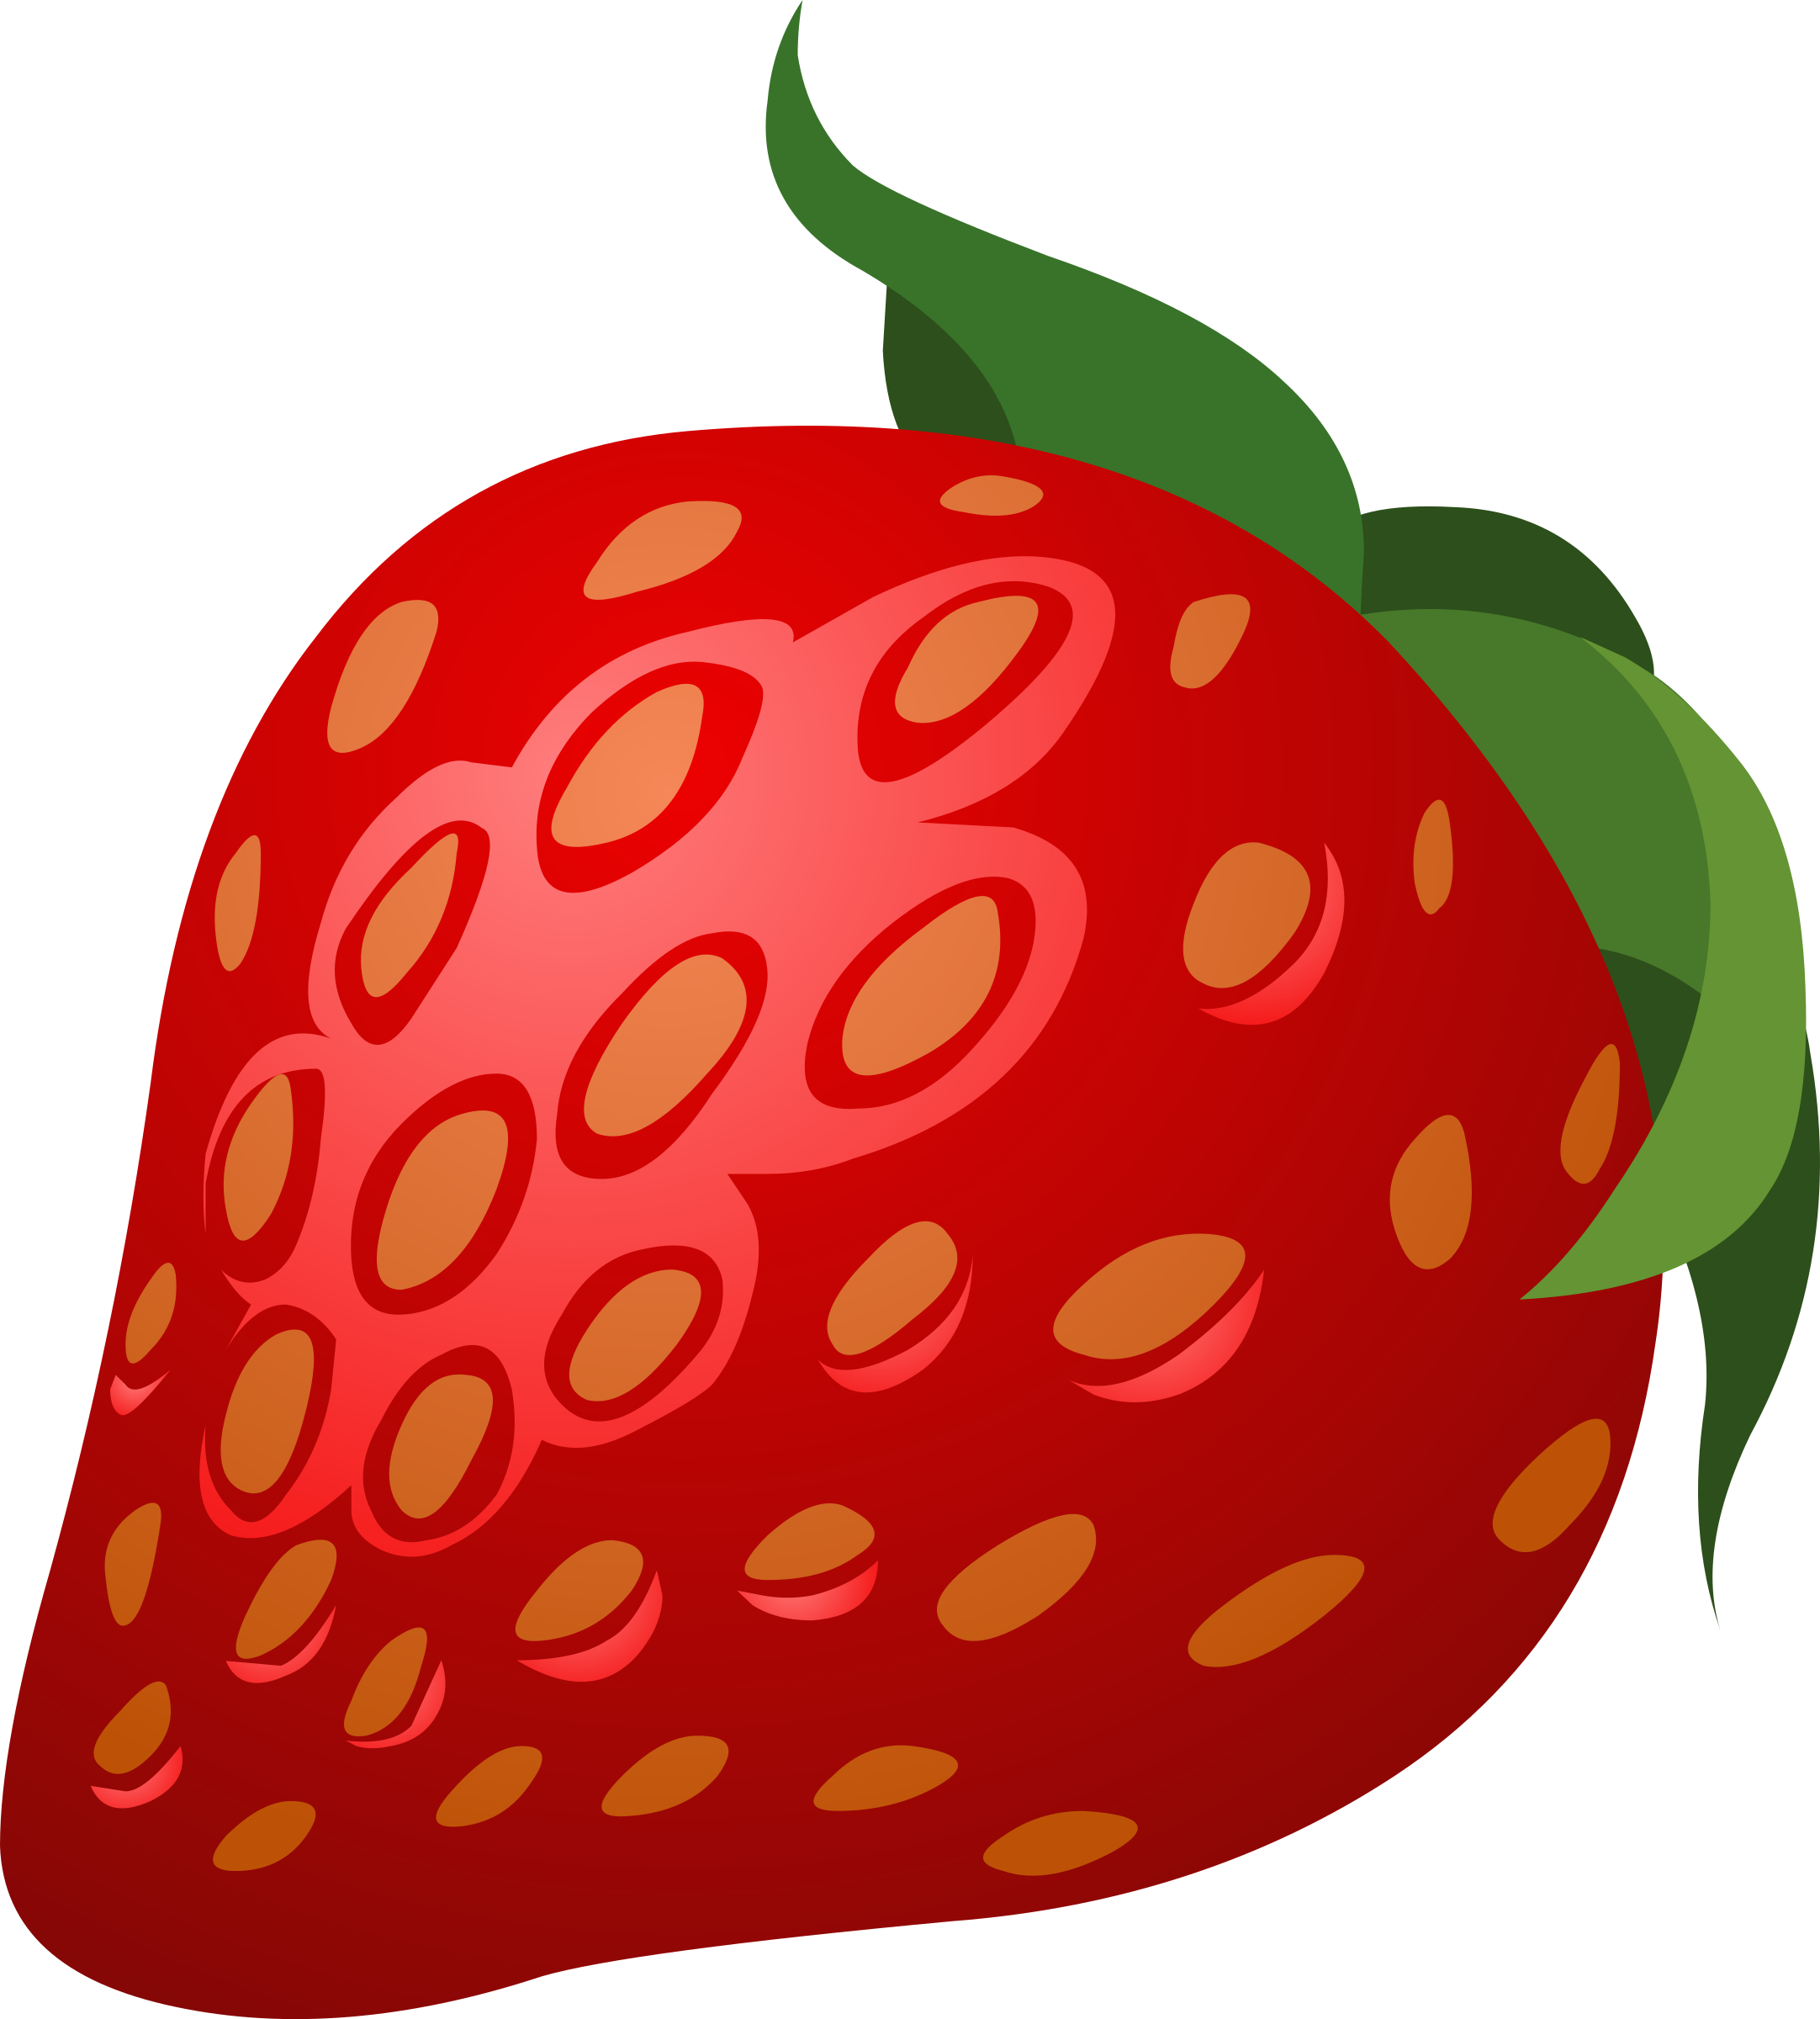 Strawberries clipart upo. Food strawberry big image